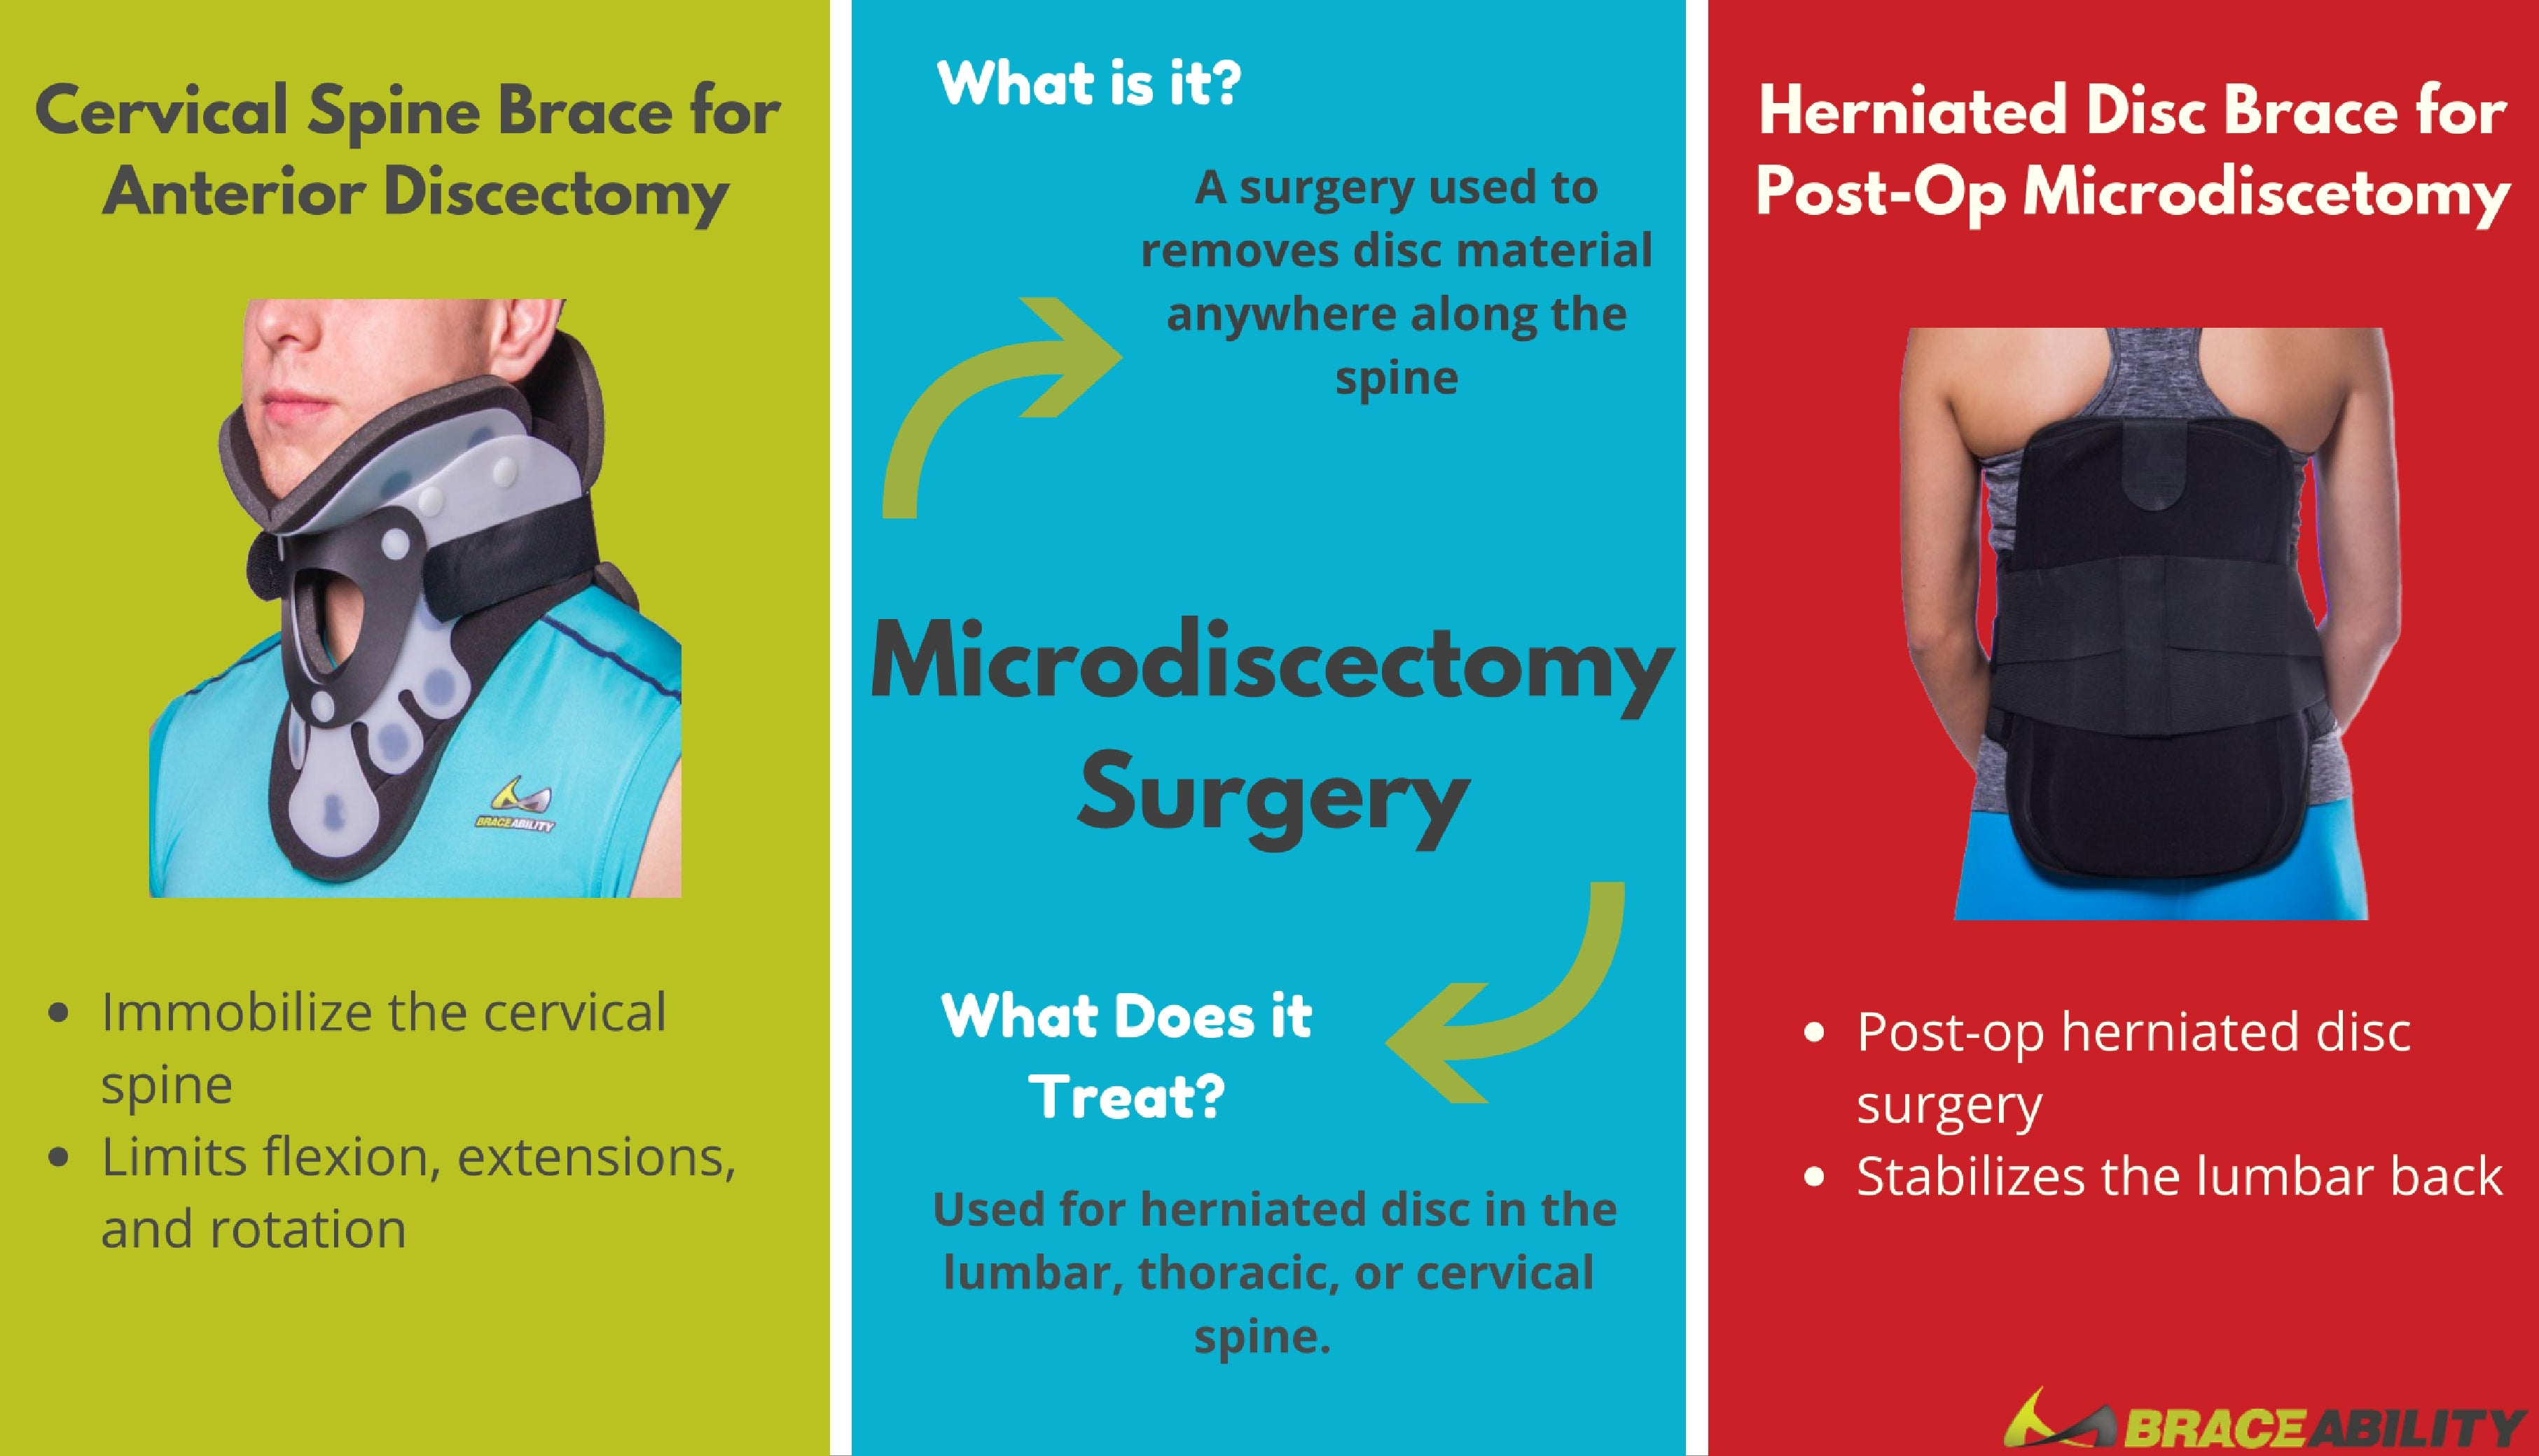 The best treatment braces for microdiscectomy surgery in your neck or back